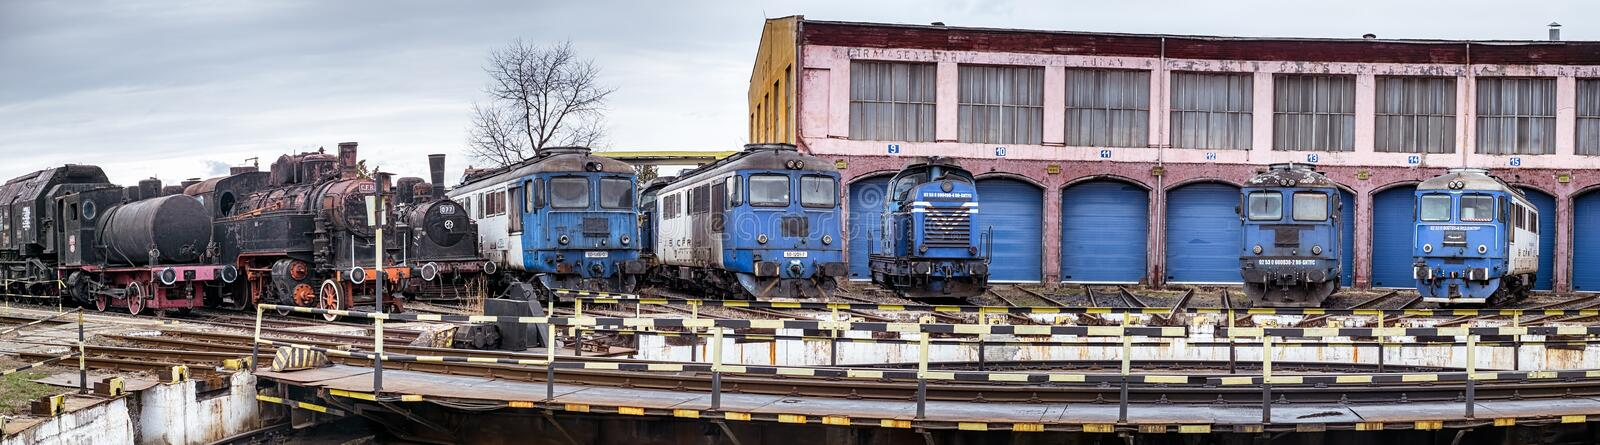 Railway depot with old steam and modern diesel locomotives royalty free stock photo